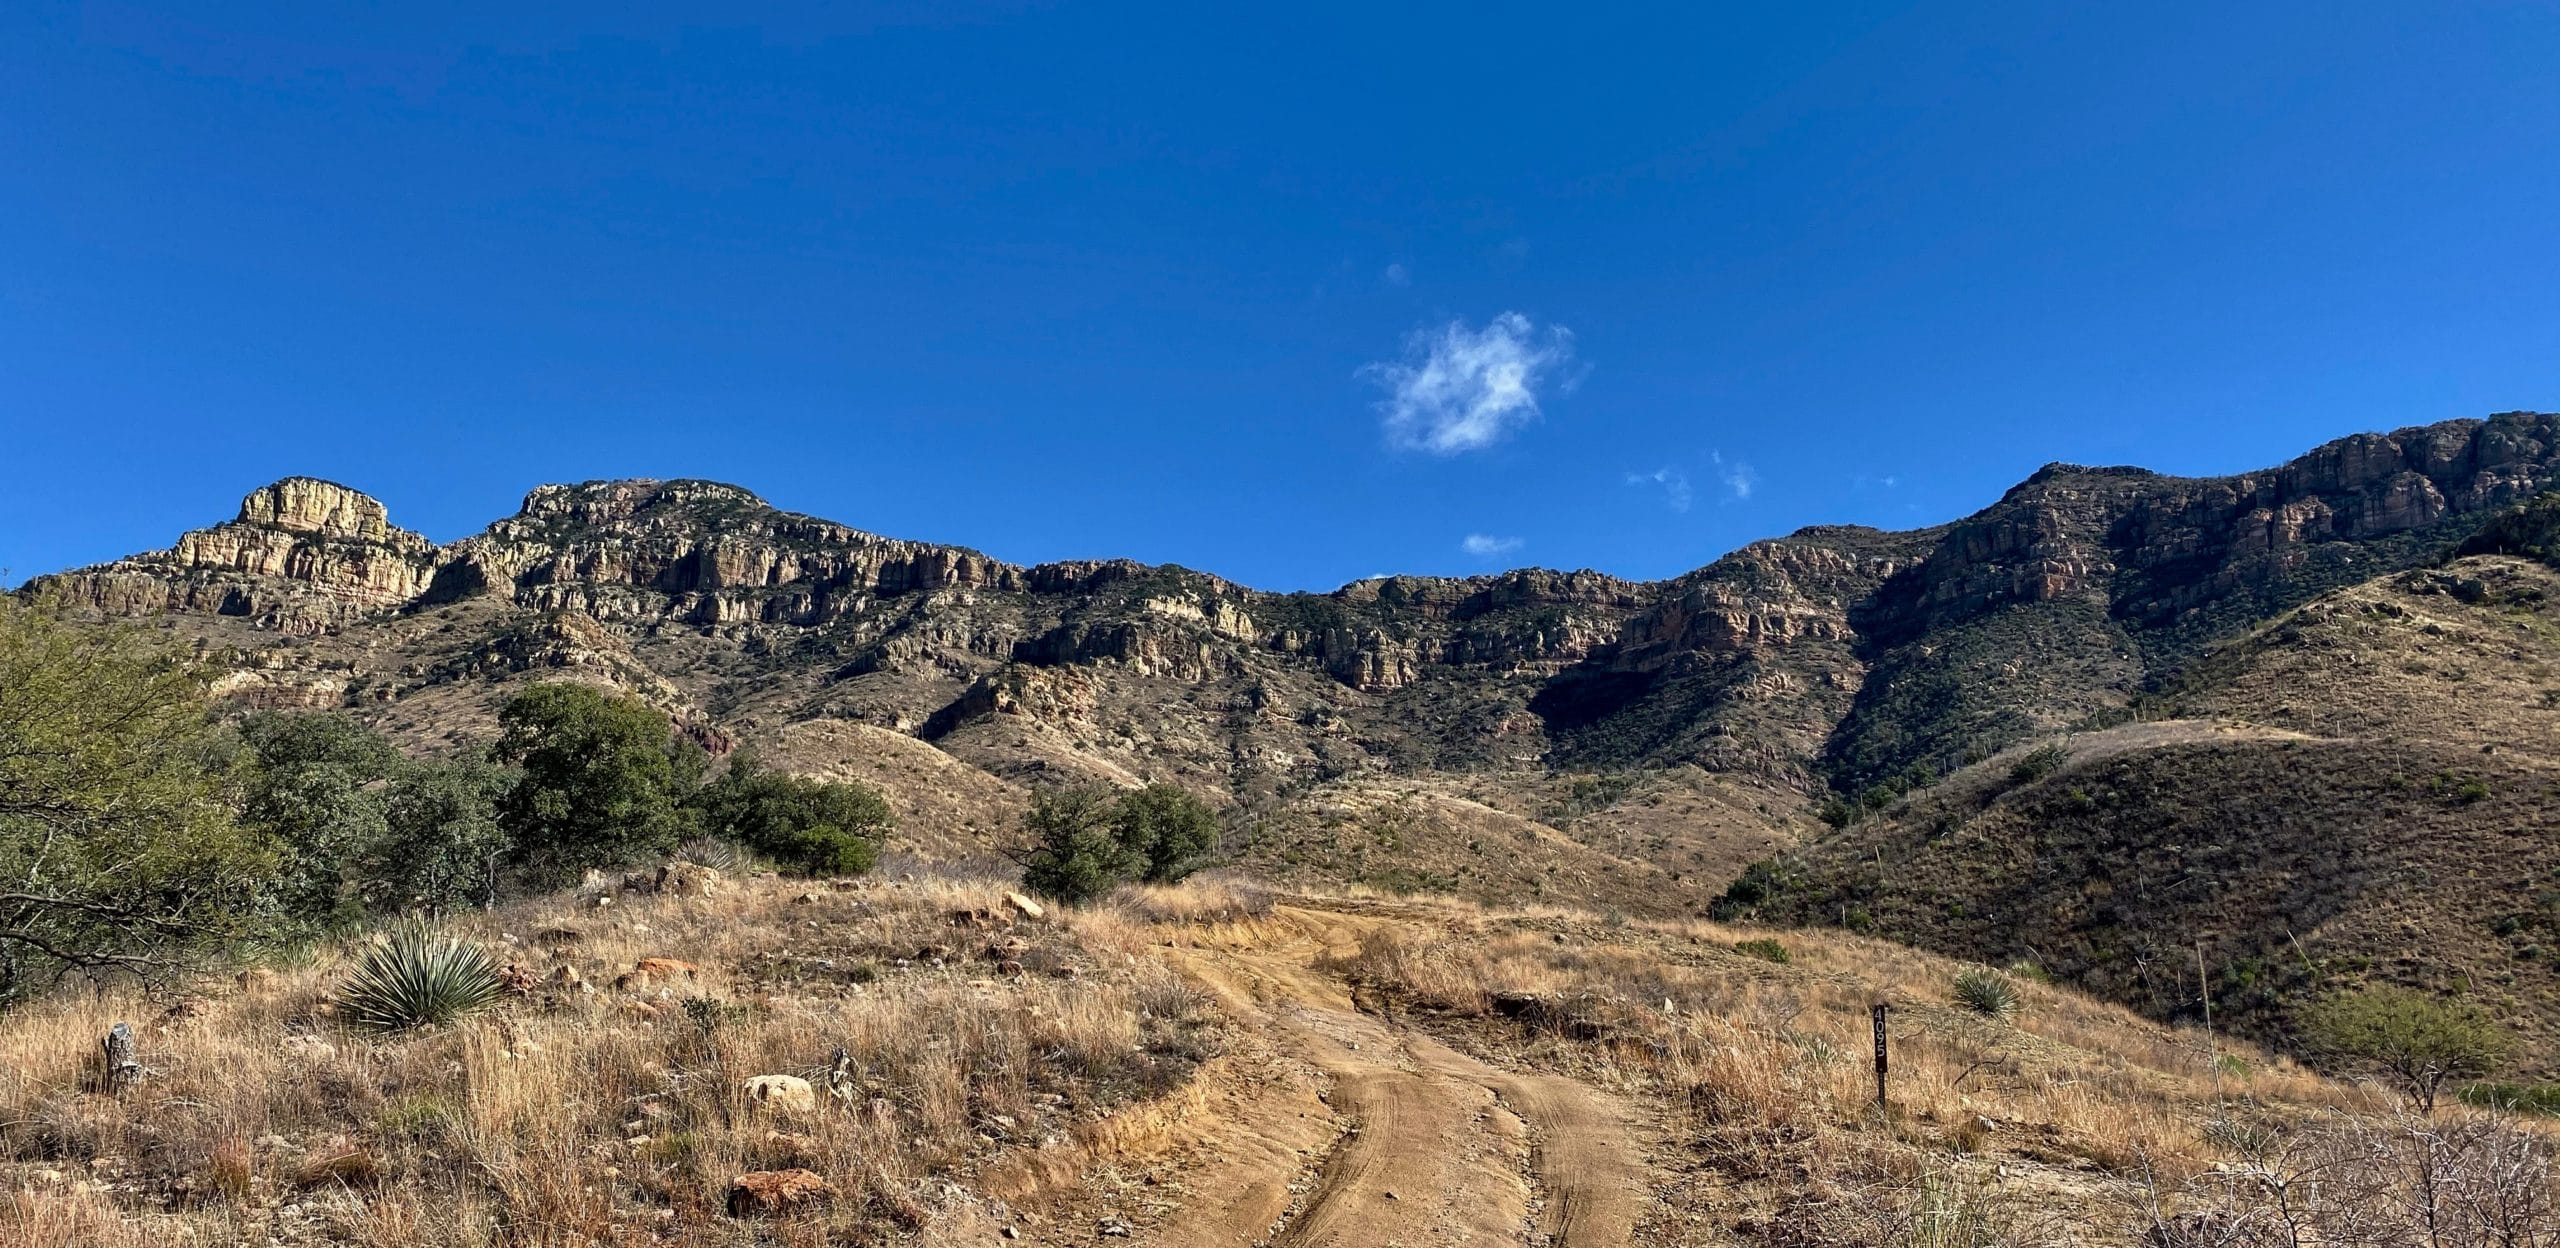 View of the Atascosa Mountains from Ruby Road near Nogales, Arizona.